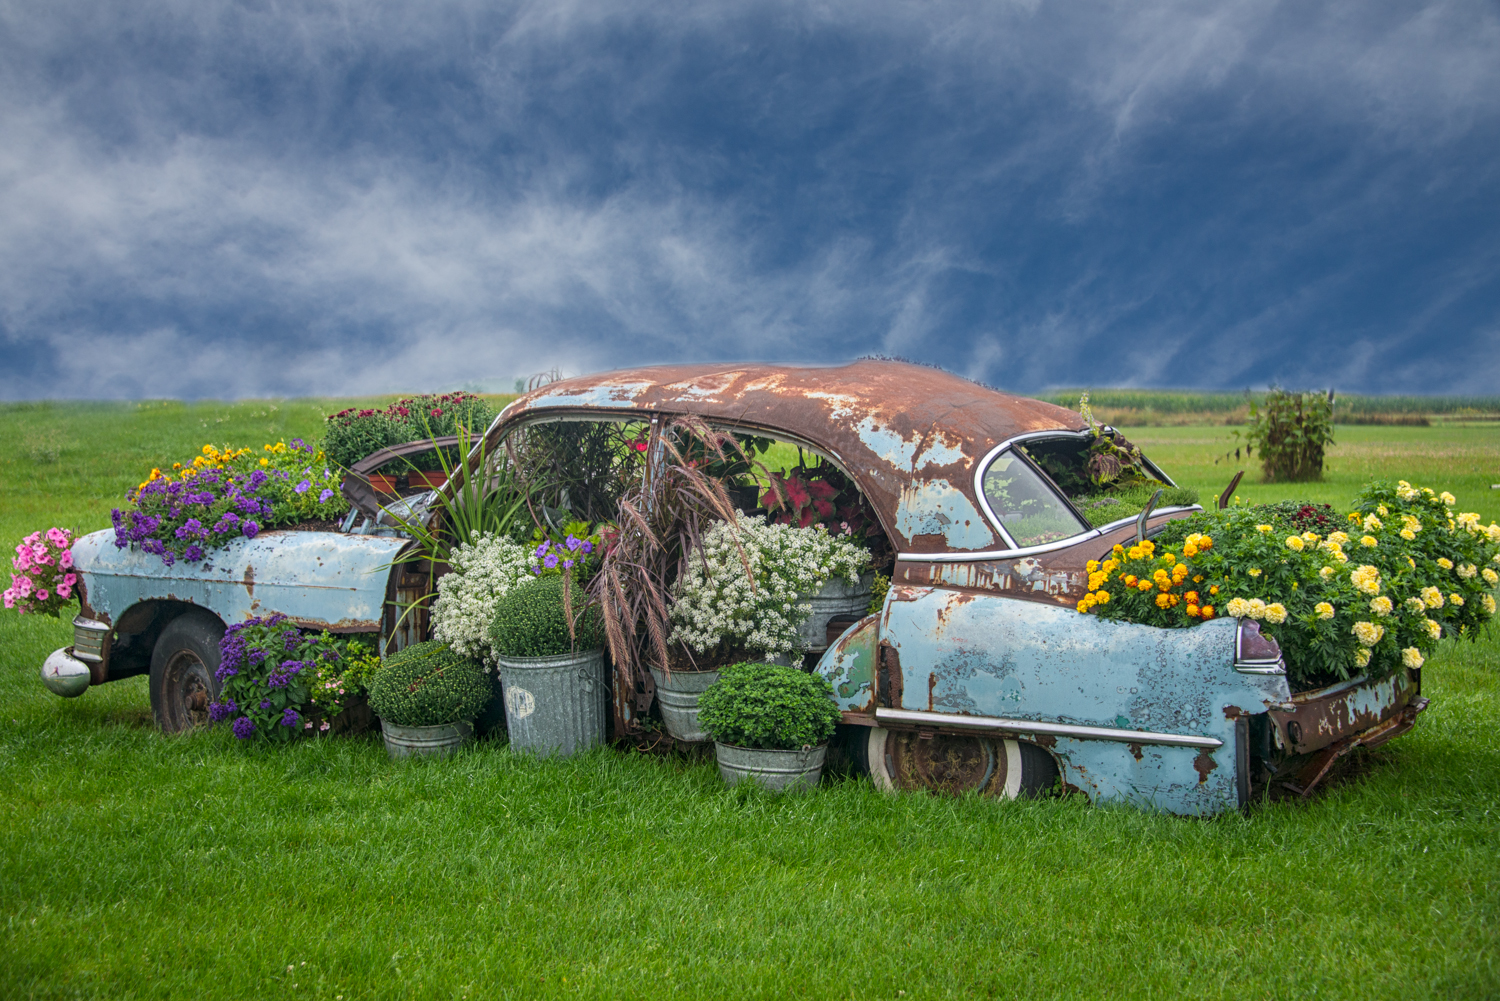 3rd place - Beautiful Rust - Phyllis Bankier